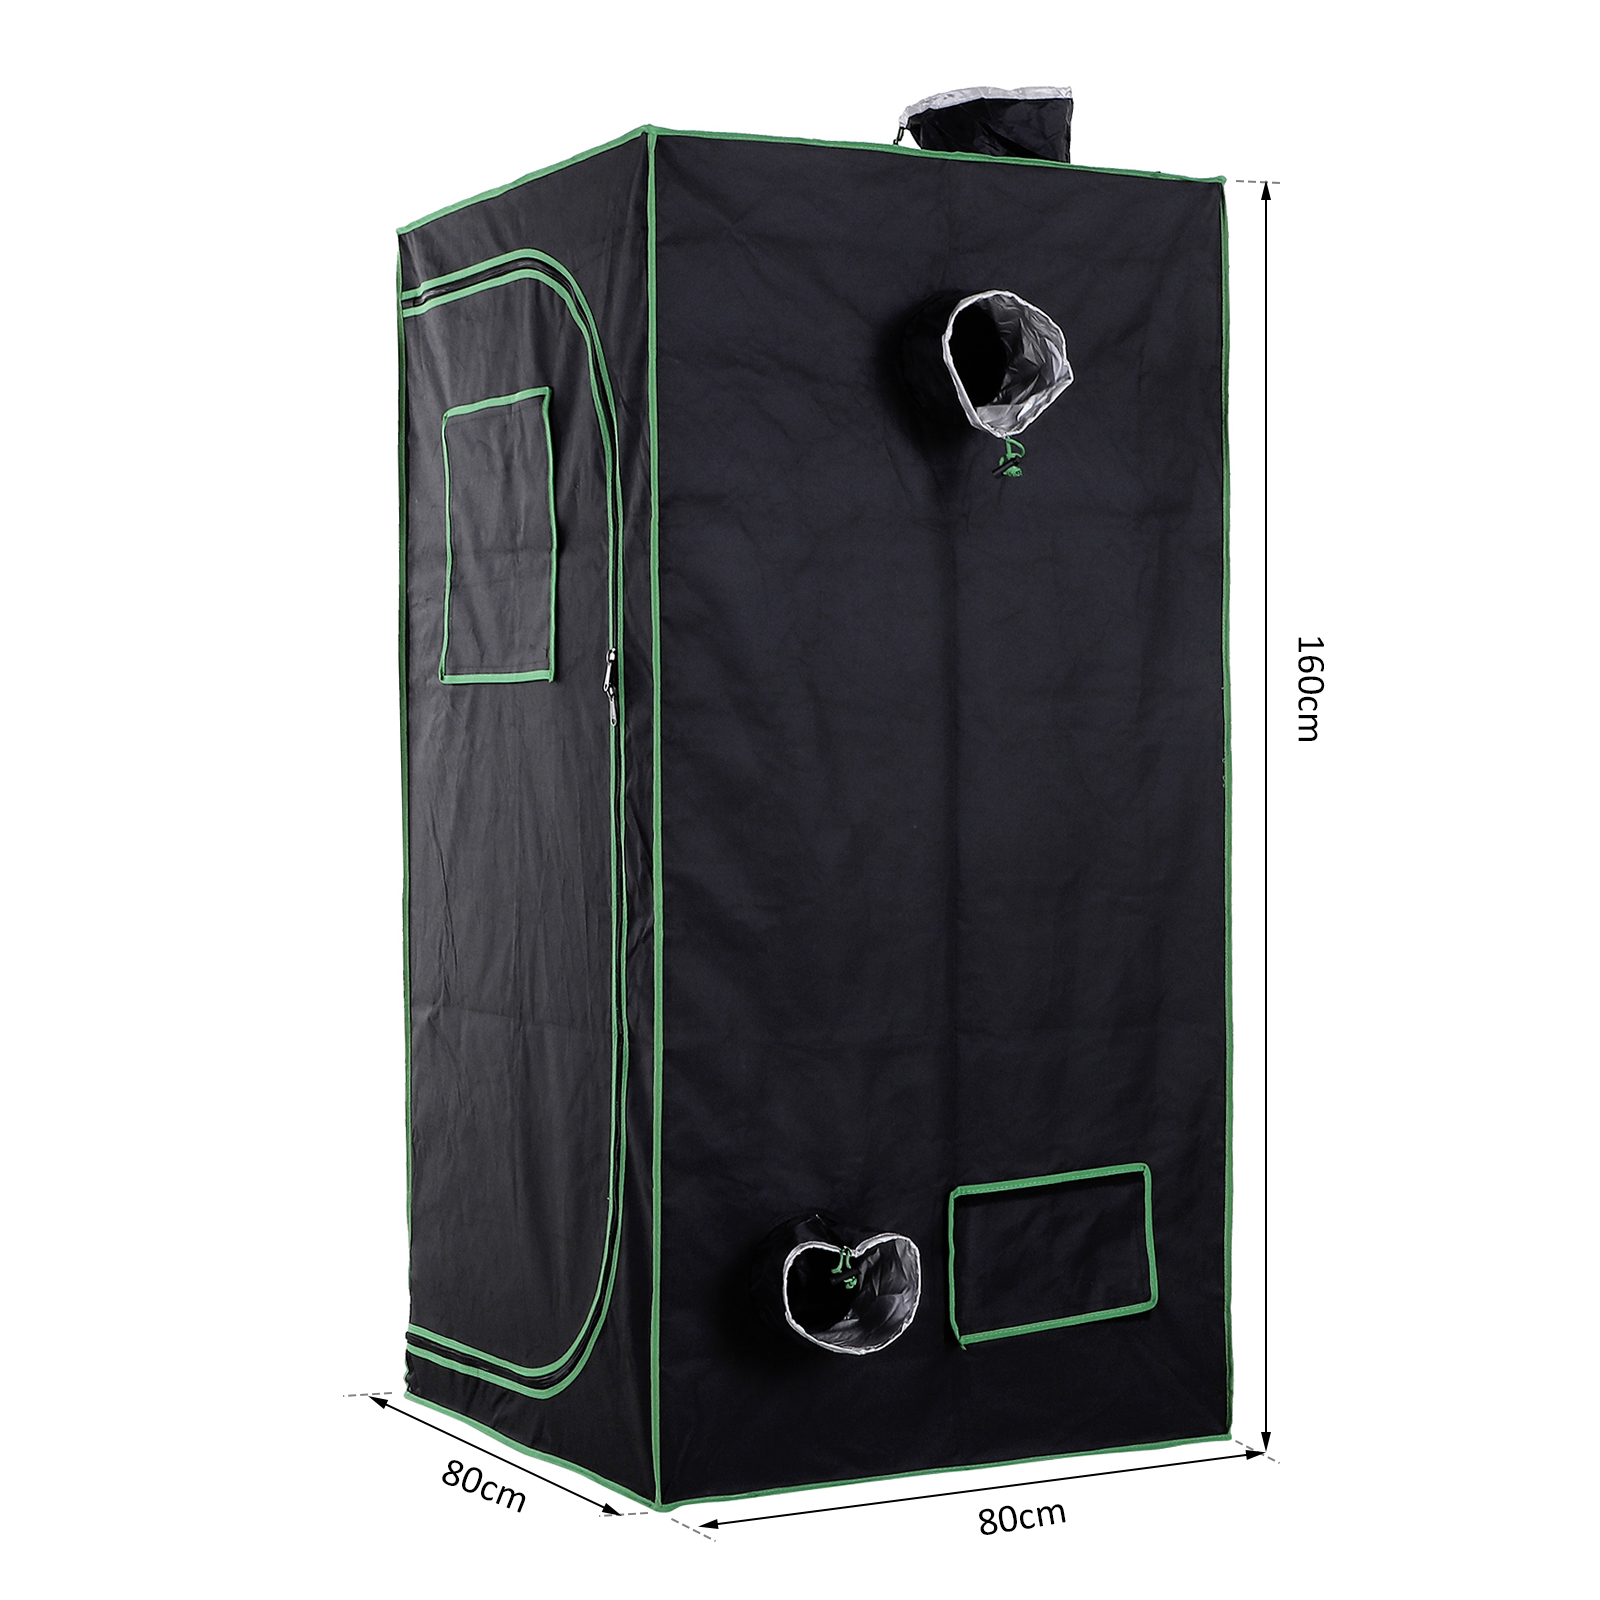 Hydroponic-Plant-Grow-Tent-Indoor-Obeservation-Window-Floor-Tray-Steel-Pole-600D thumbnail 25